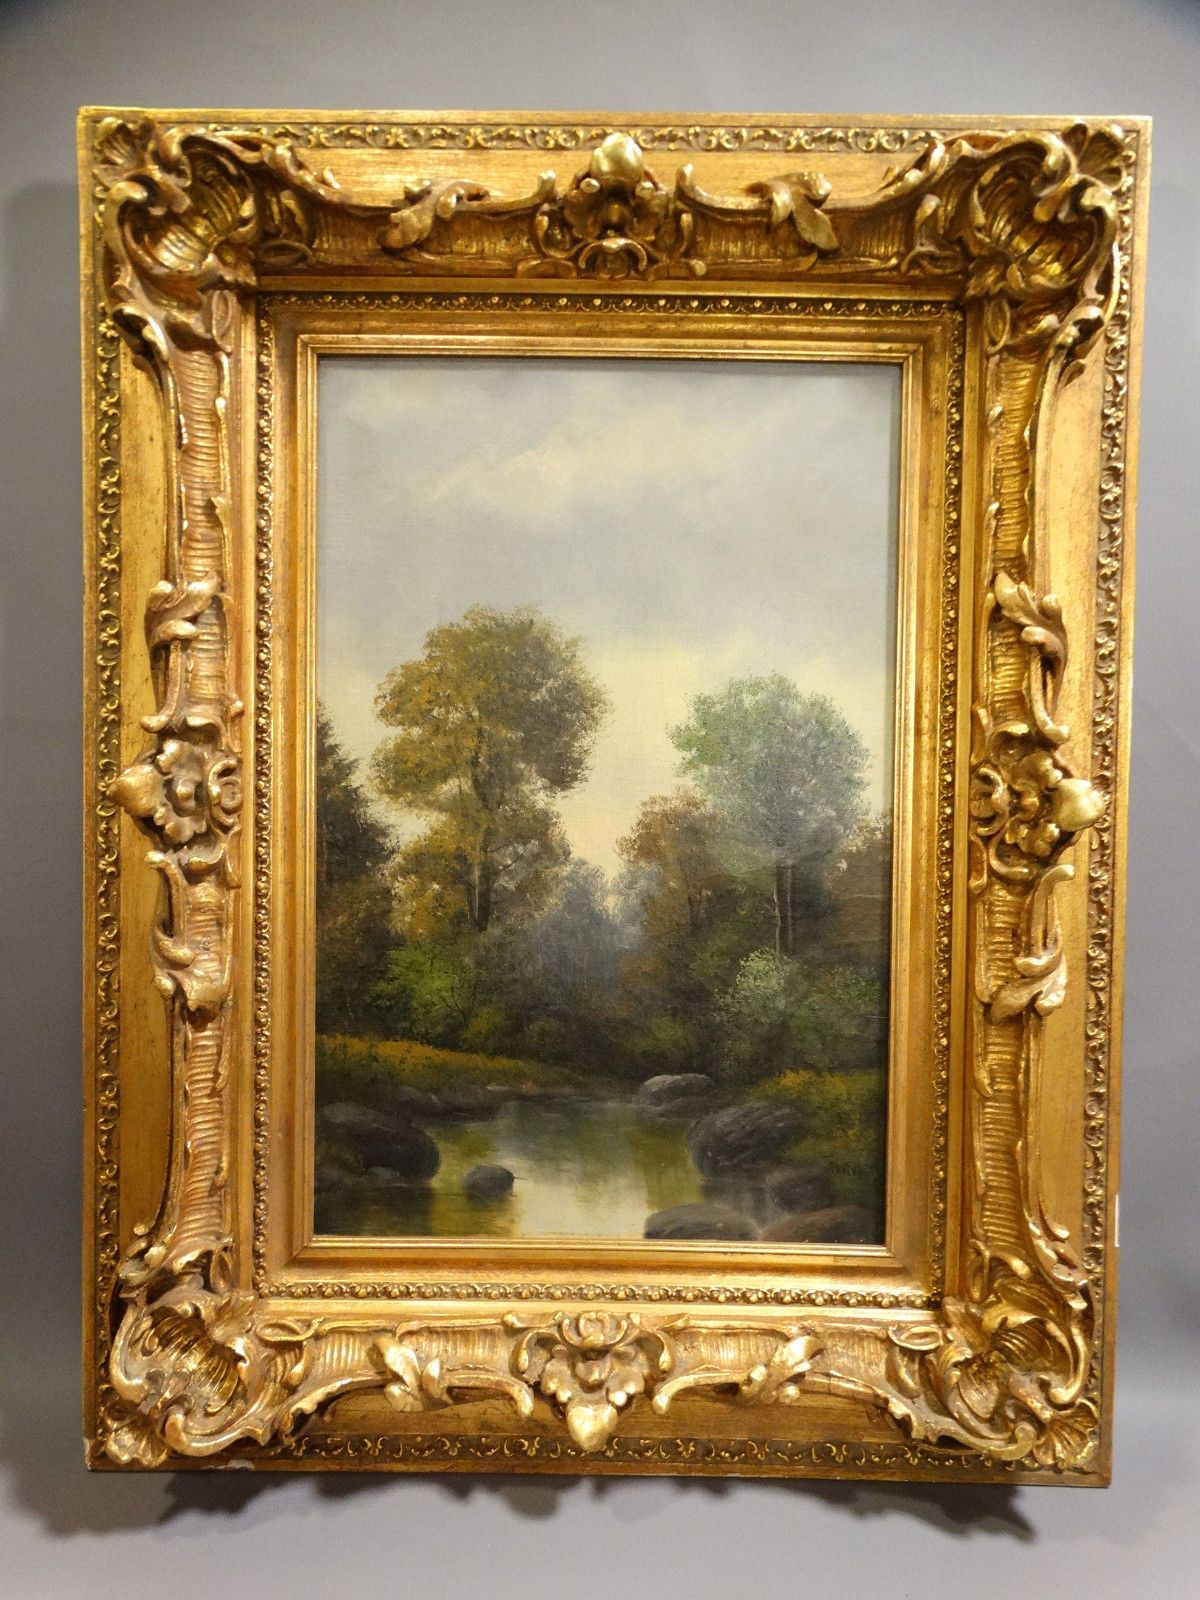 19thC Antique VICTORIAN Era RIVER VALLEY Old STREAM Landscape OLD Oil PAINTING https://t.co/OJrZDPZNHx https://t.co/zedGY119Vo